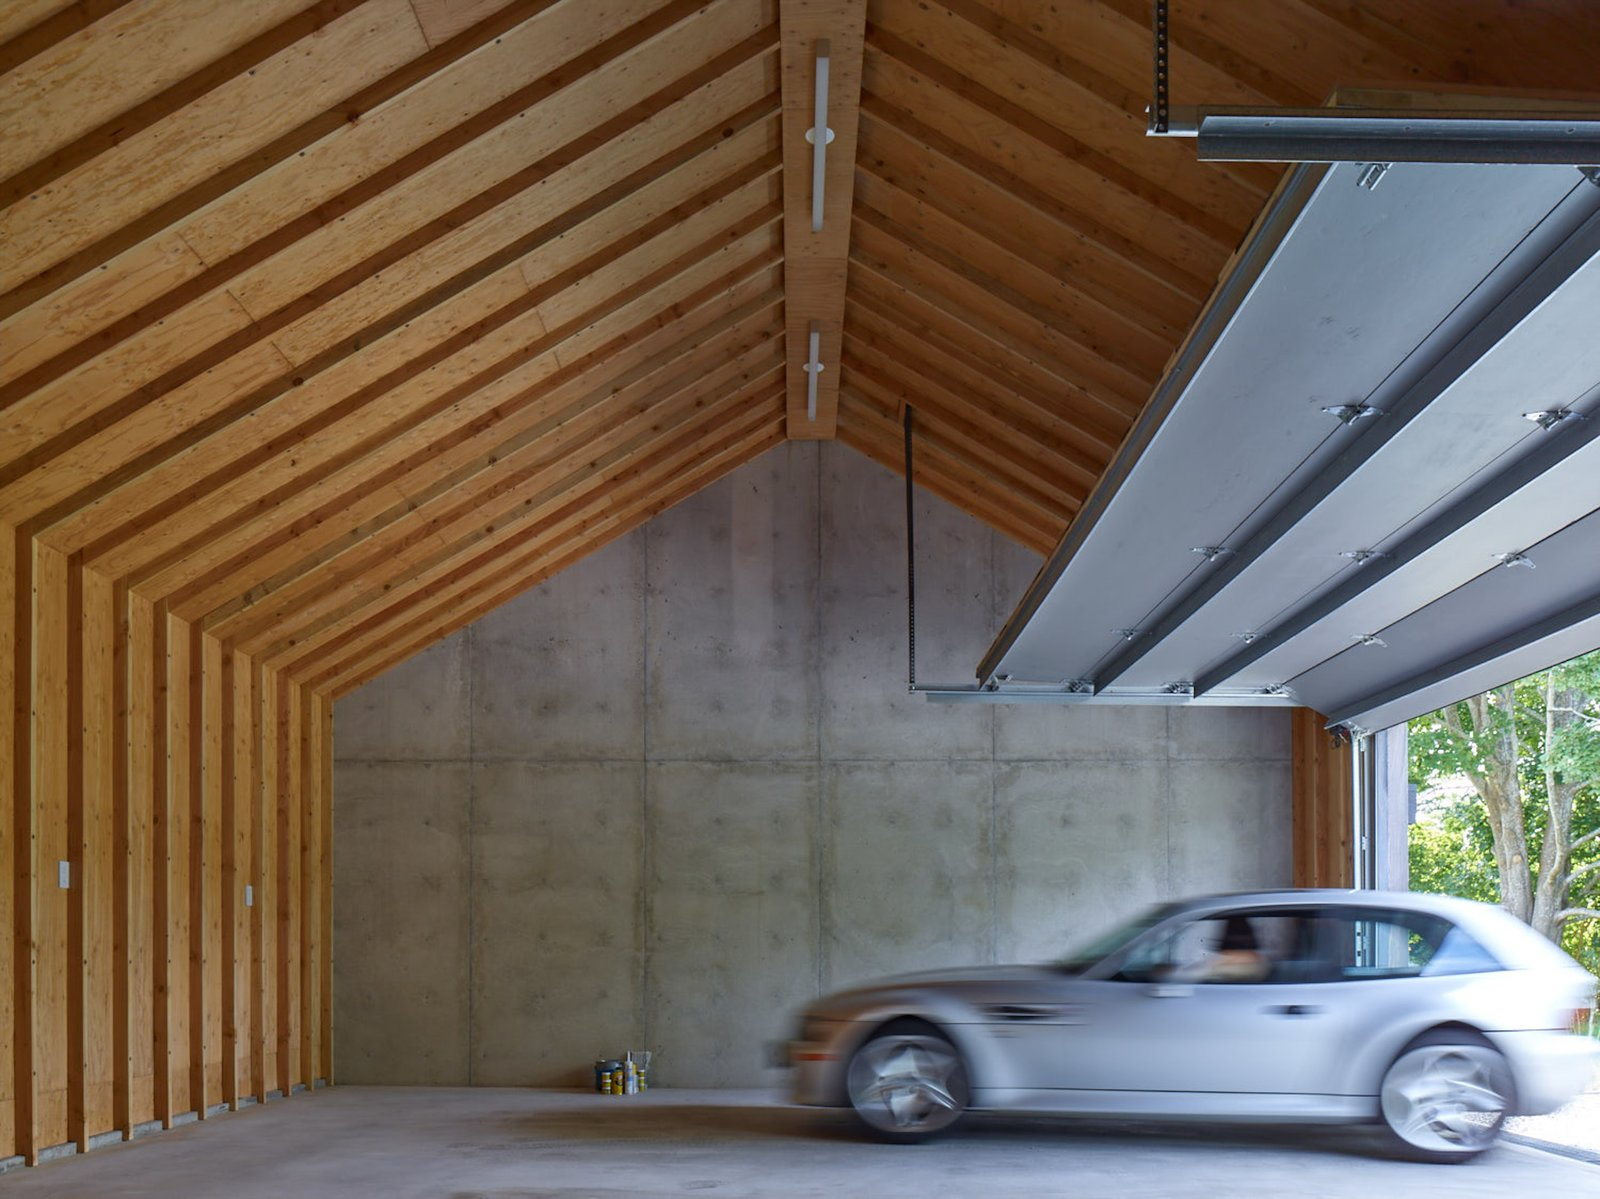 Garage The garage behind the concrete wall.  Best Garage Photos from This Stunning Suffolk County Home Brings a Modern Twist to a Historic Area